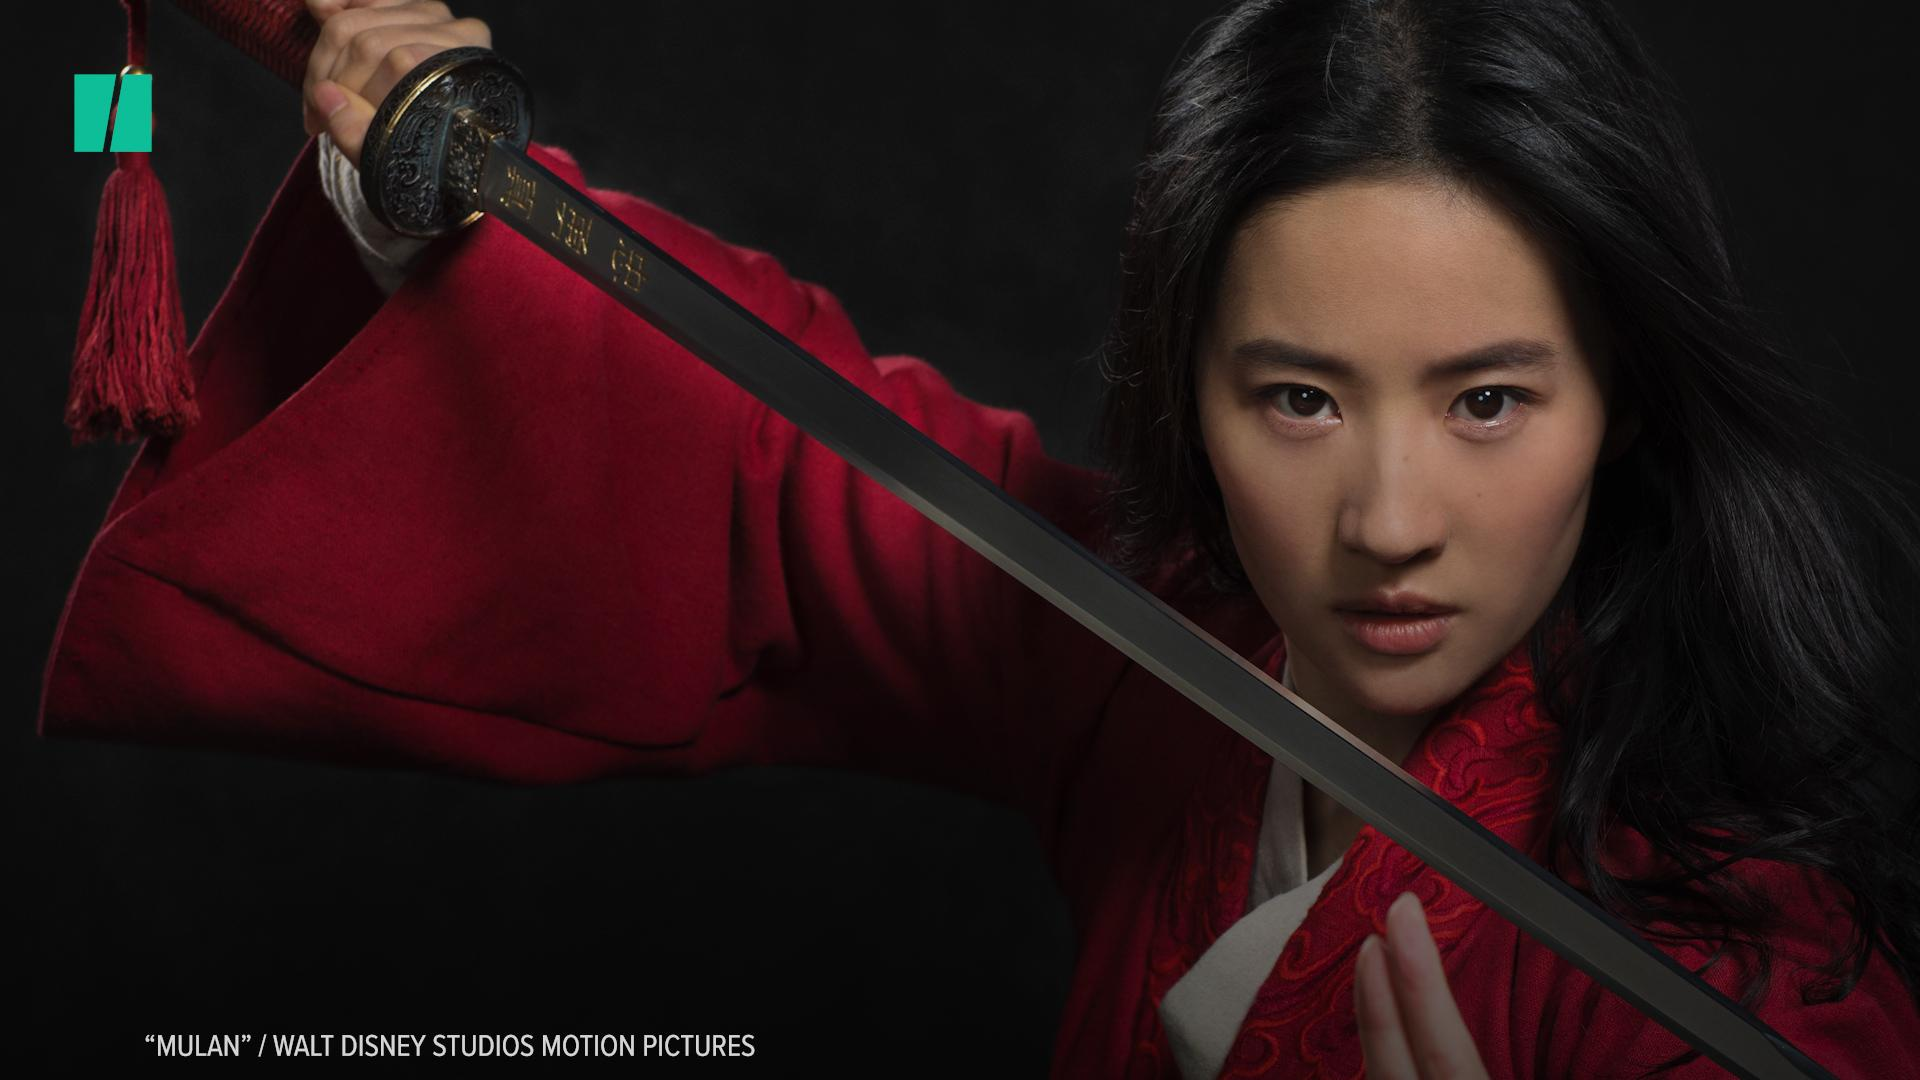 Fans Call For 'Mulan' Boycott After Star Liu Yifei Expresses Support For Hong Kong Police